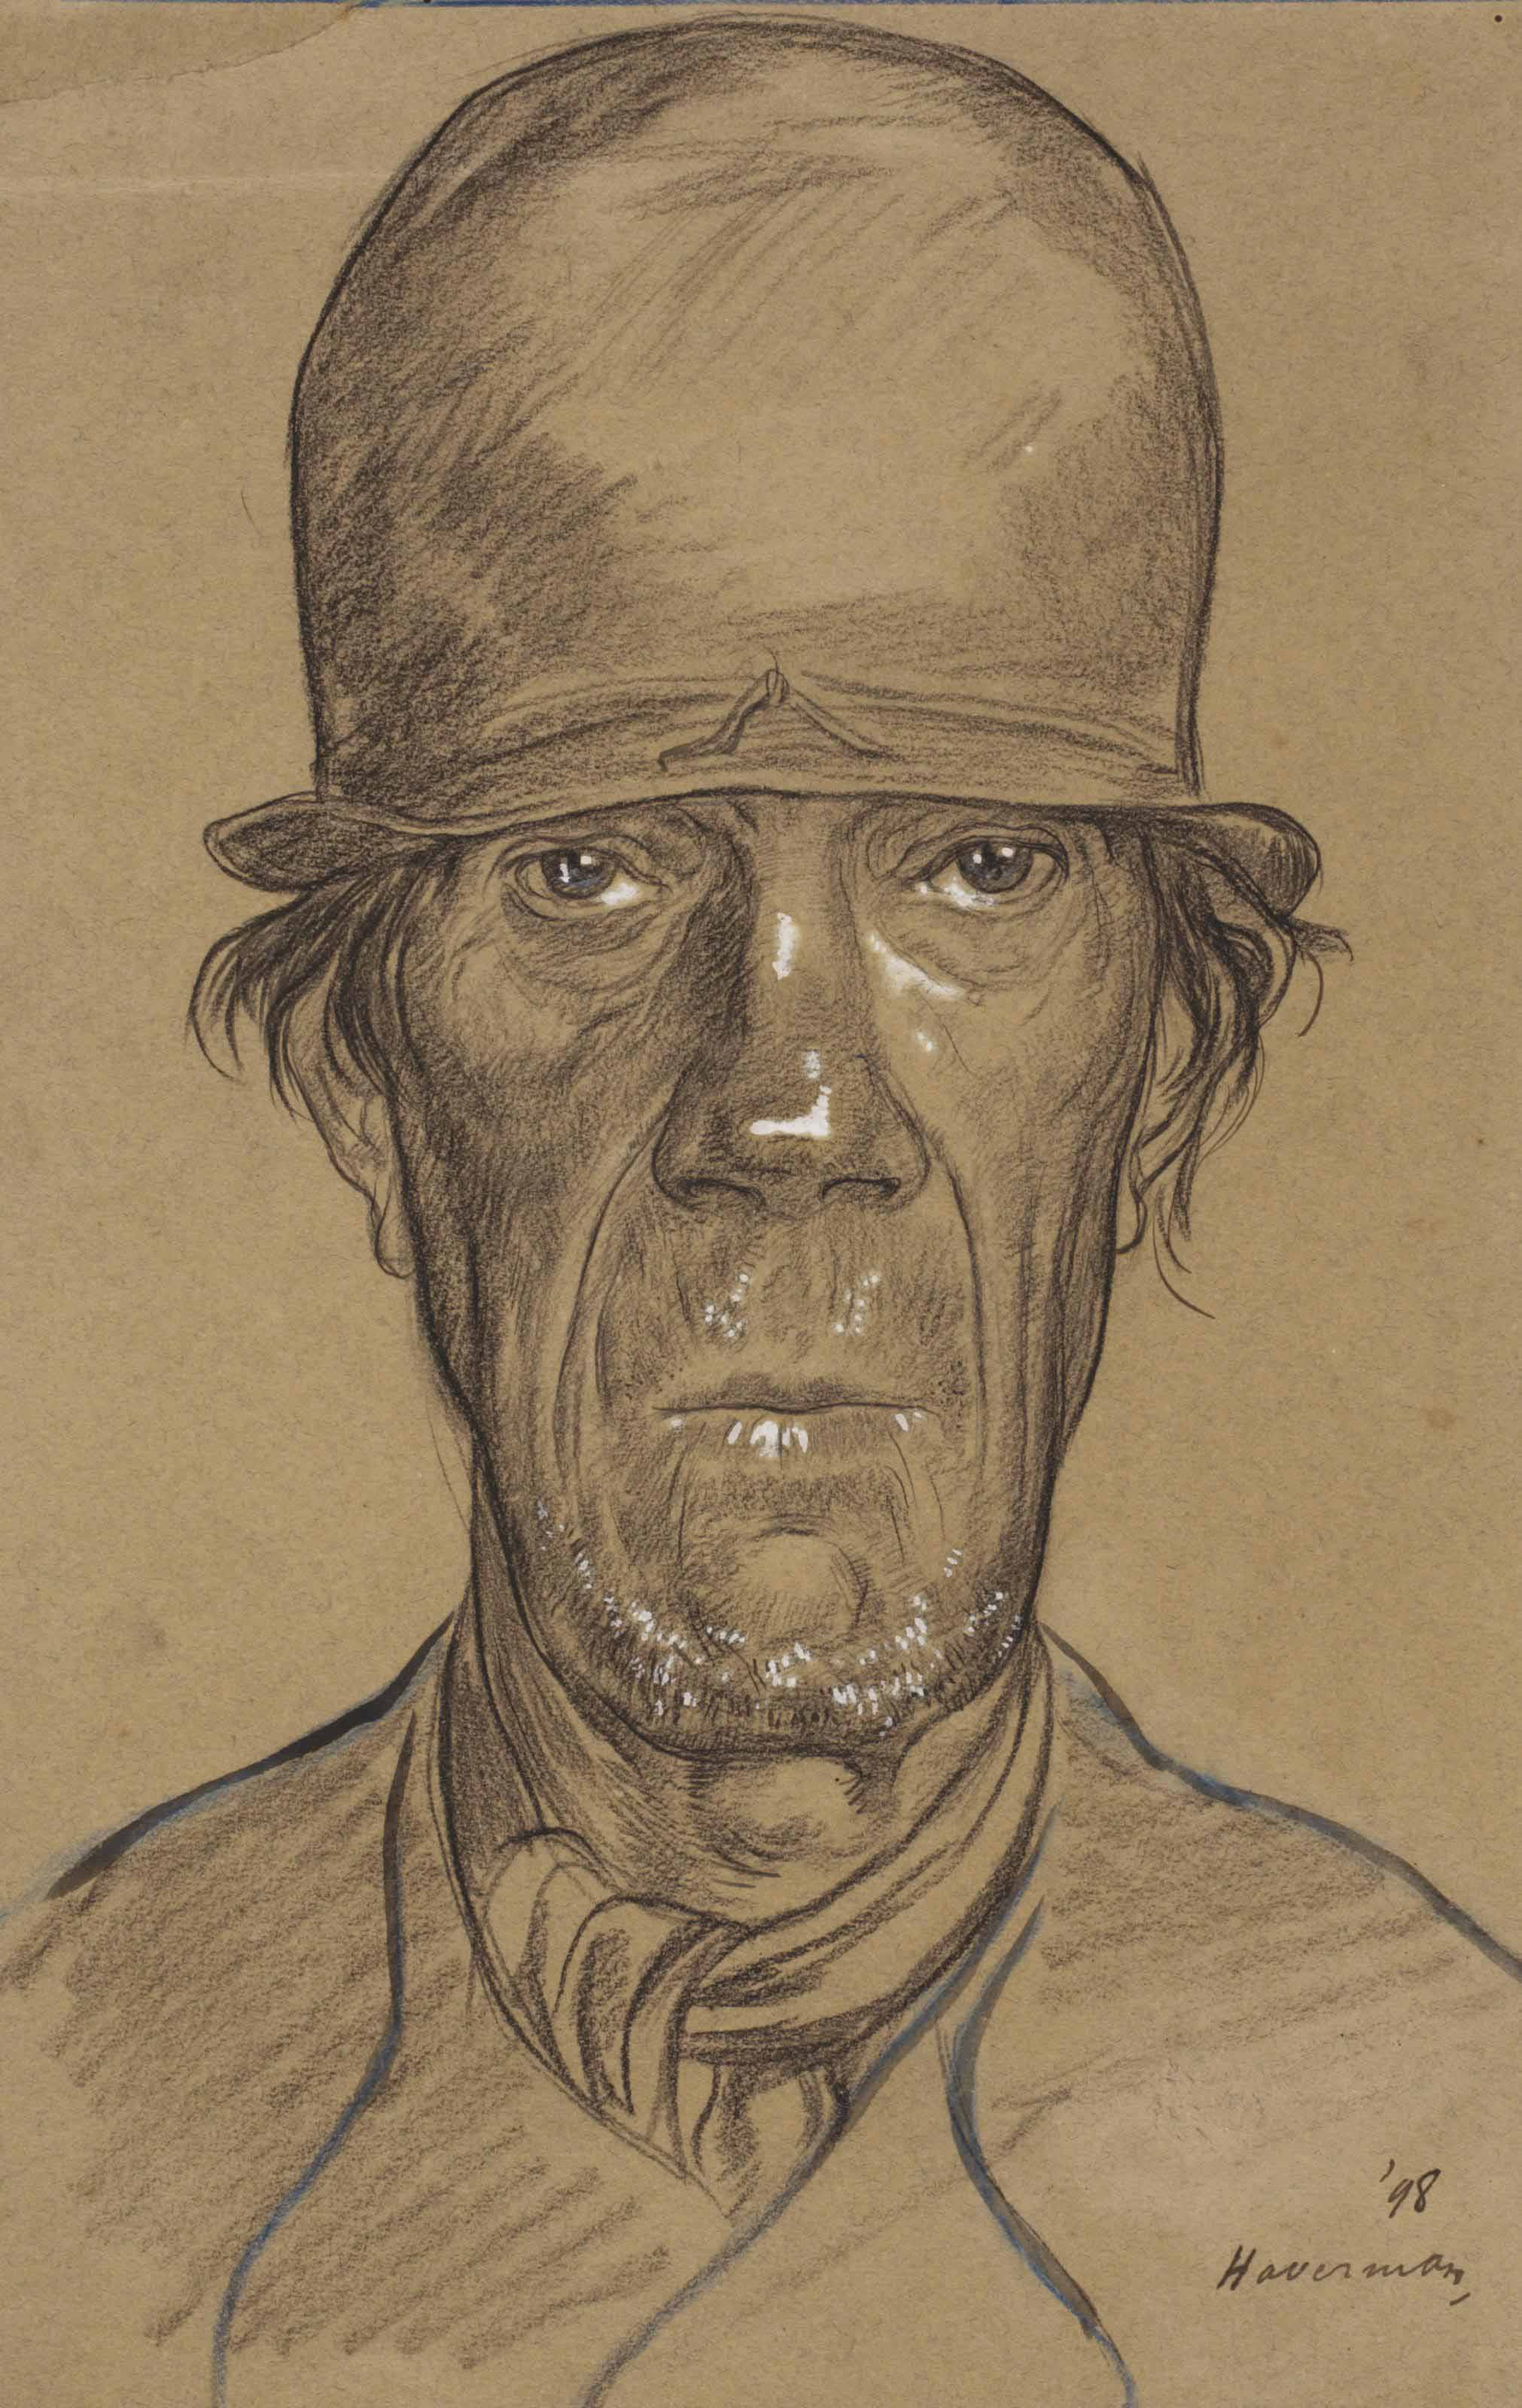 Portrait of a farmer, possibly from Zeeland